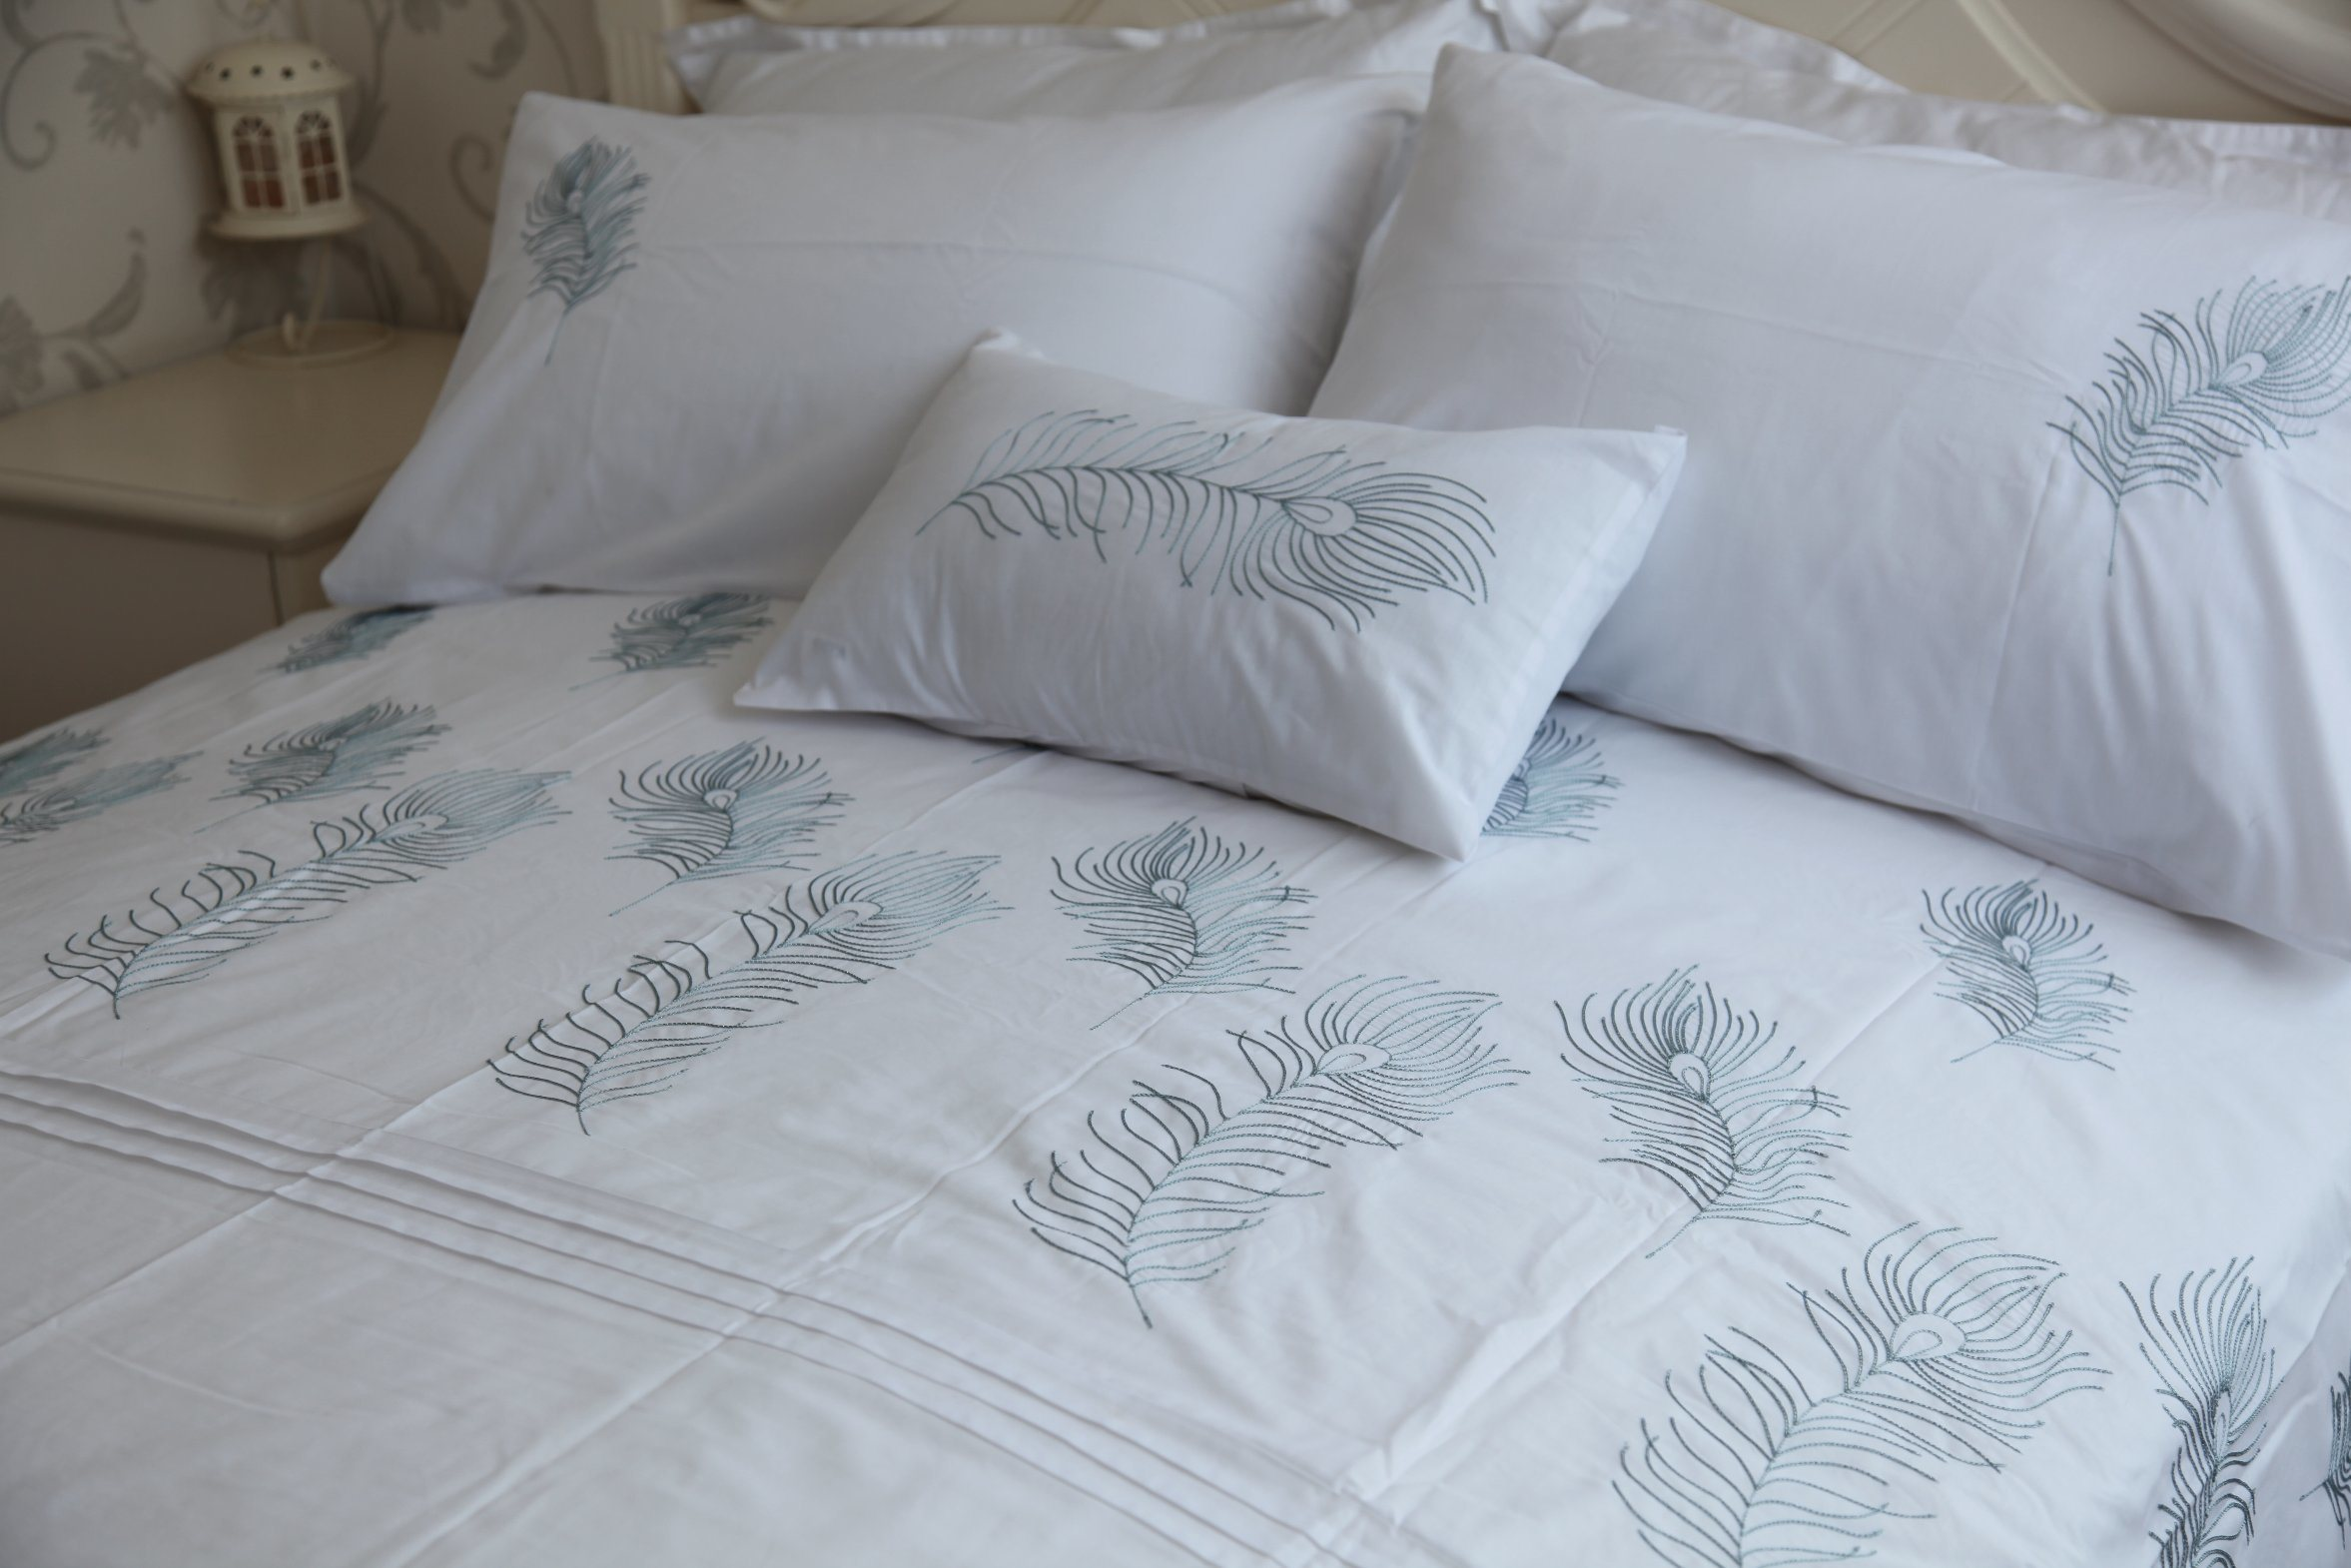 MID-Level Leaf Embrodiery Polycotton Bedding Set